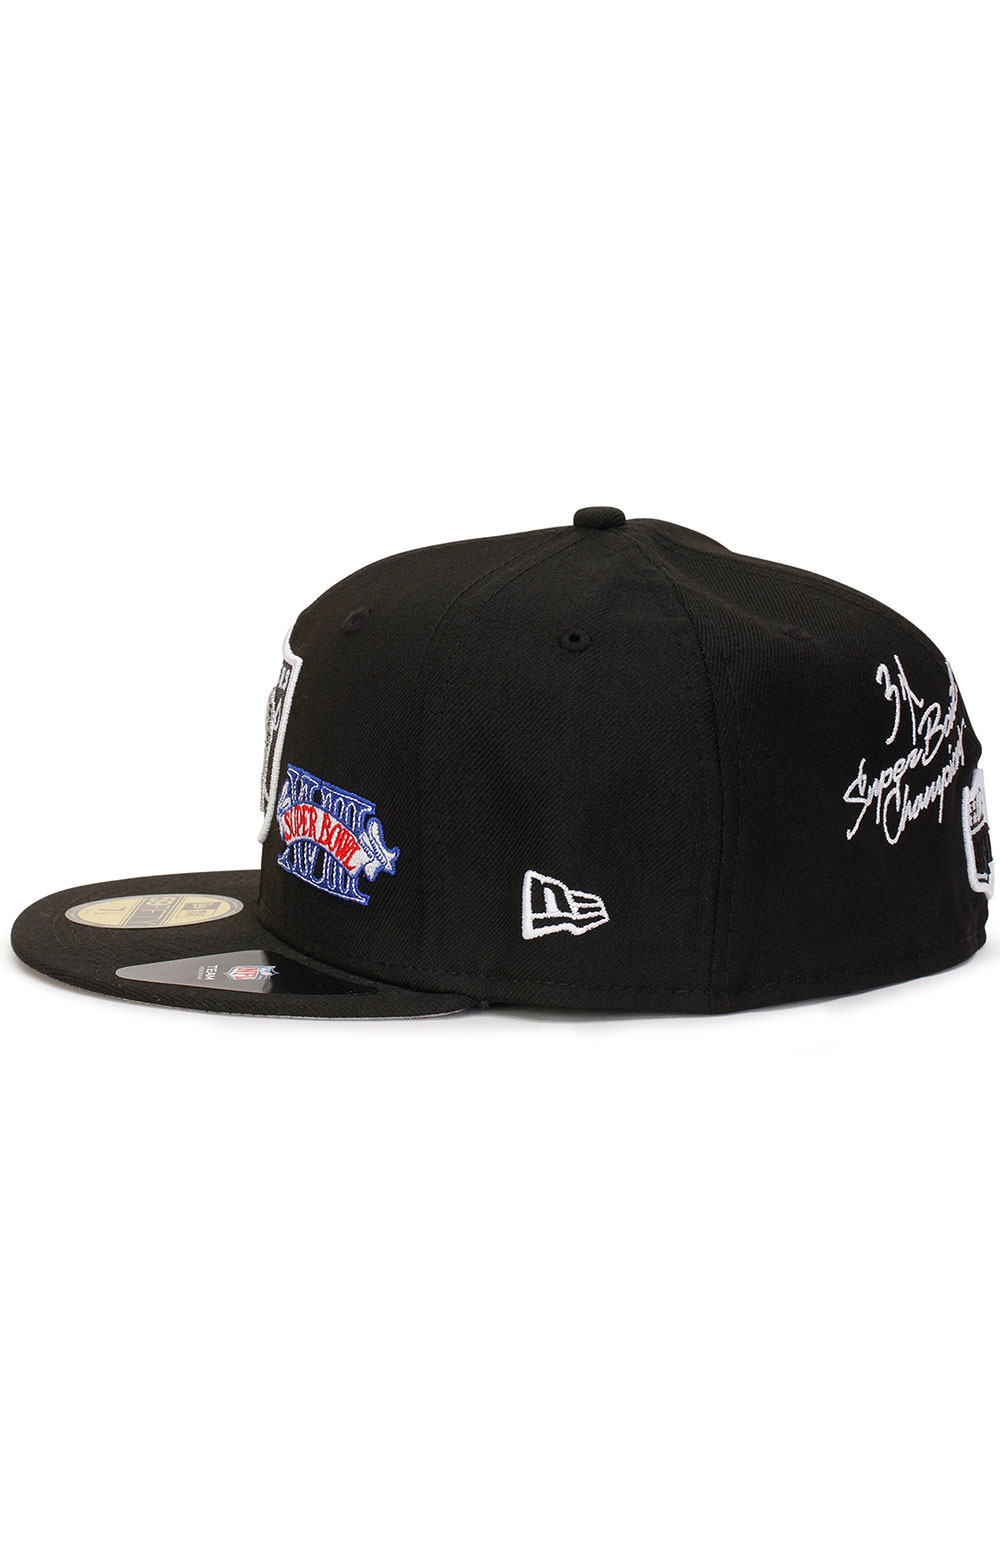 Las Vegas Raiders Super Bowl Patch 59Fifty Fitted Hat - Black  4